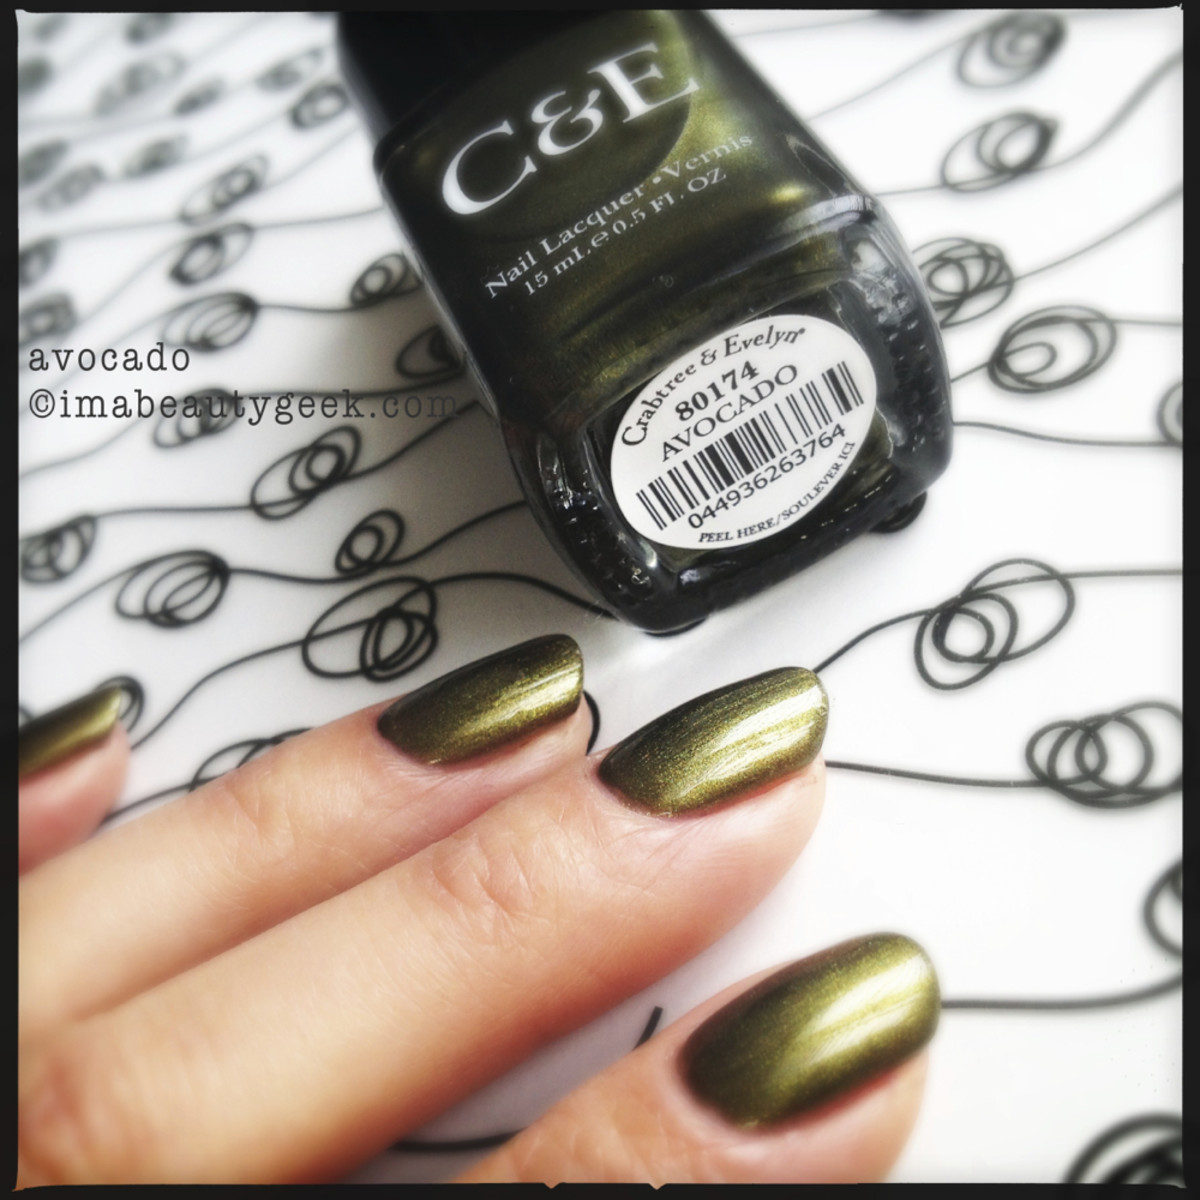 Crabtree & Evelyn Polish Avocado